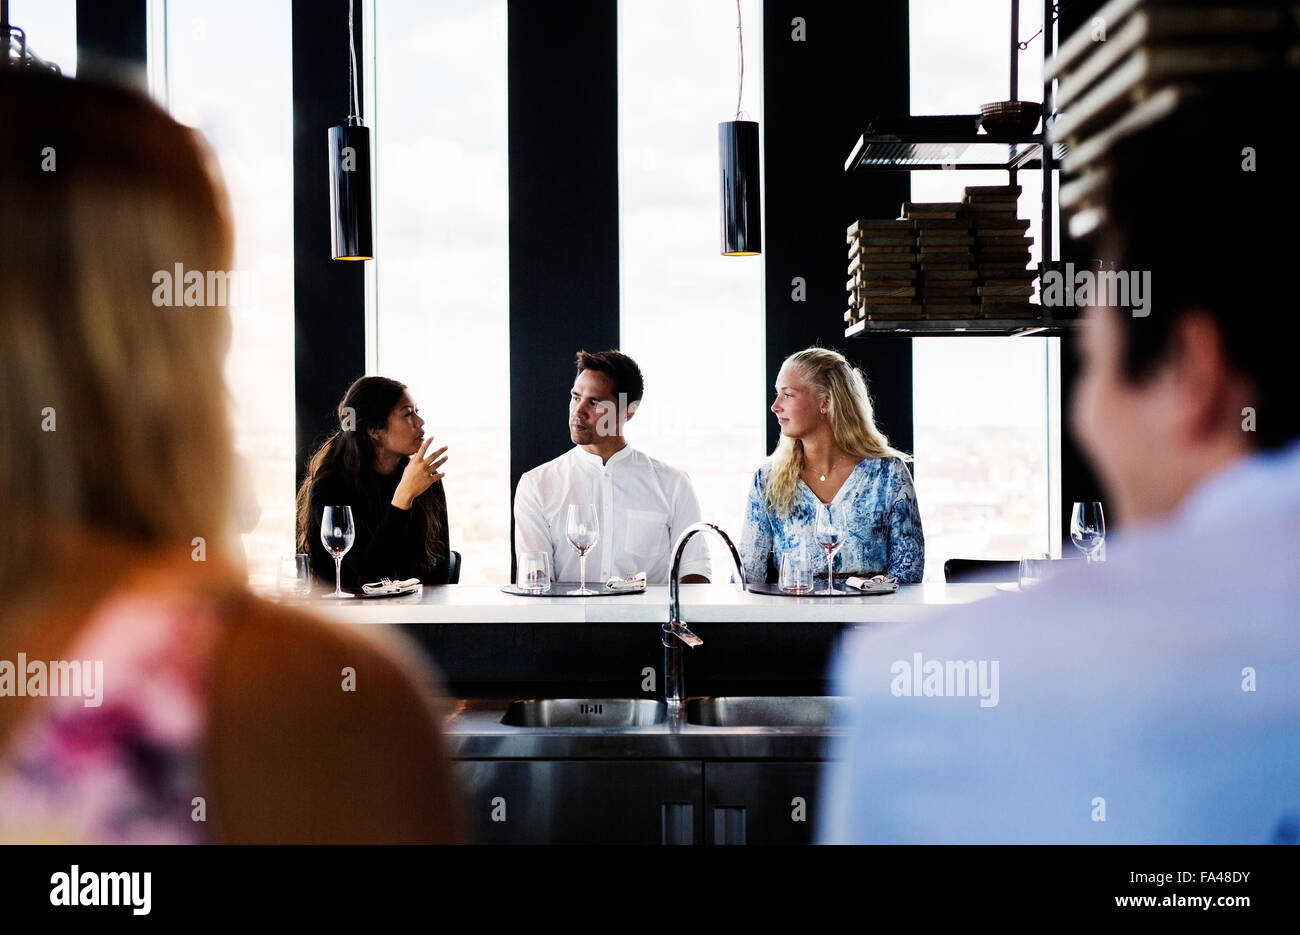 Friends communicating at table in Sky bar restaurant - Stock Image